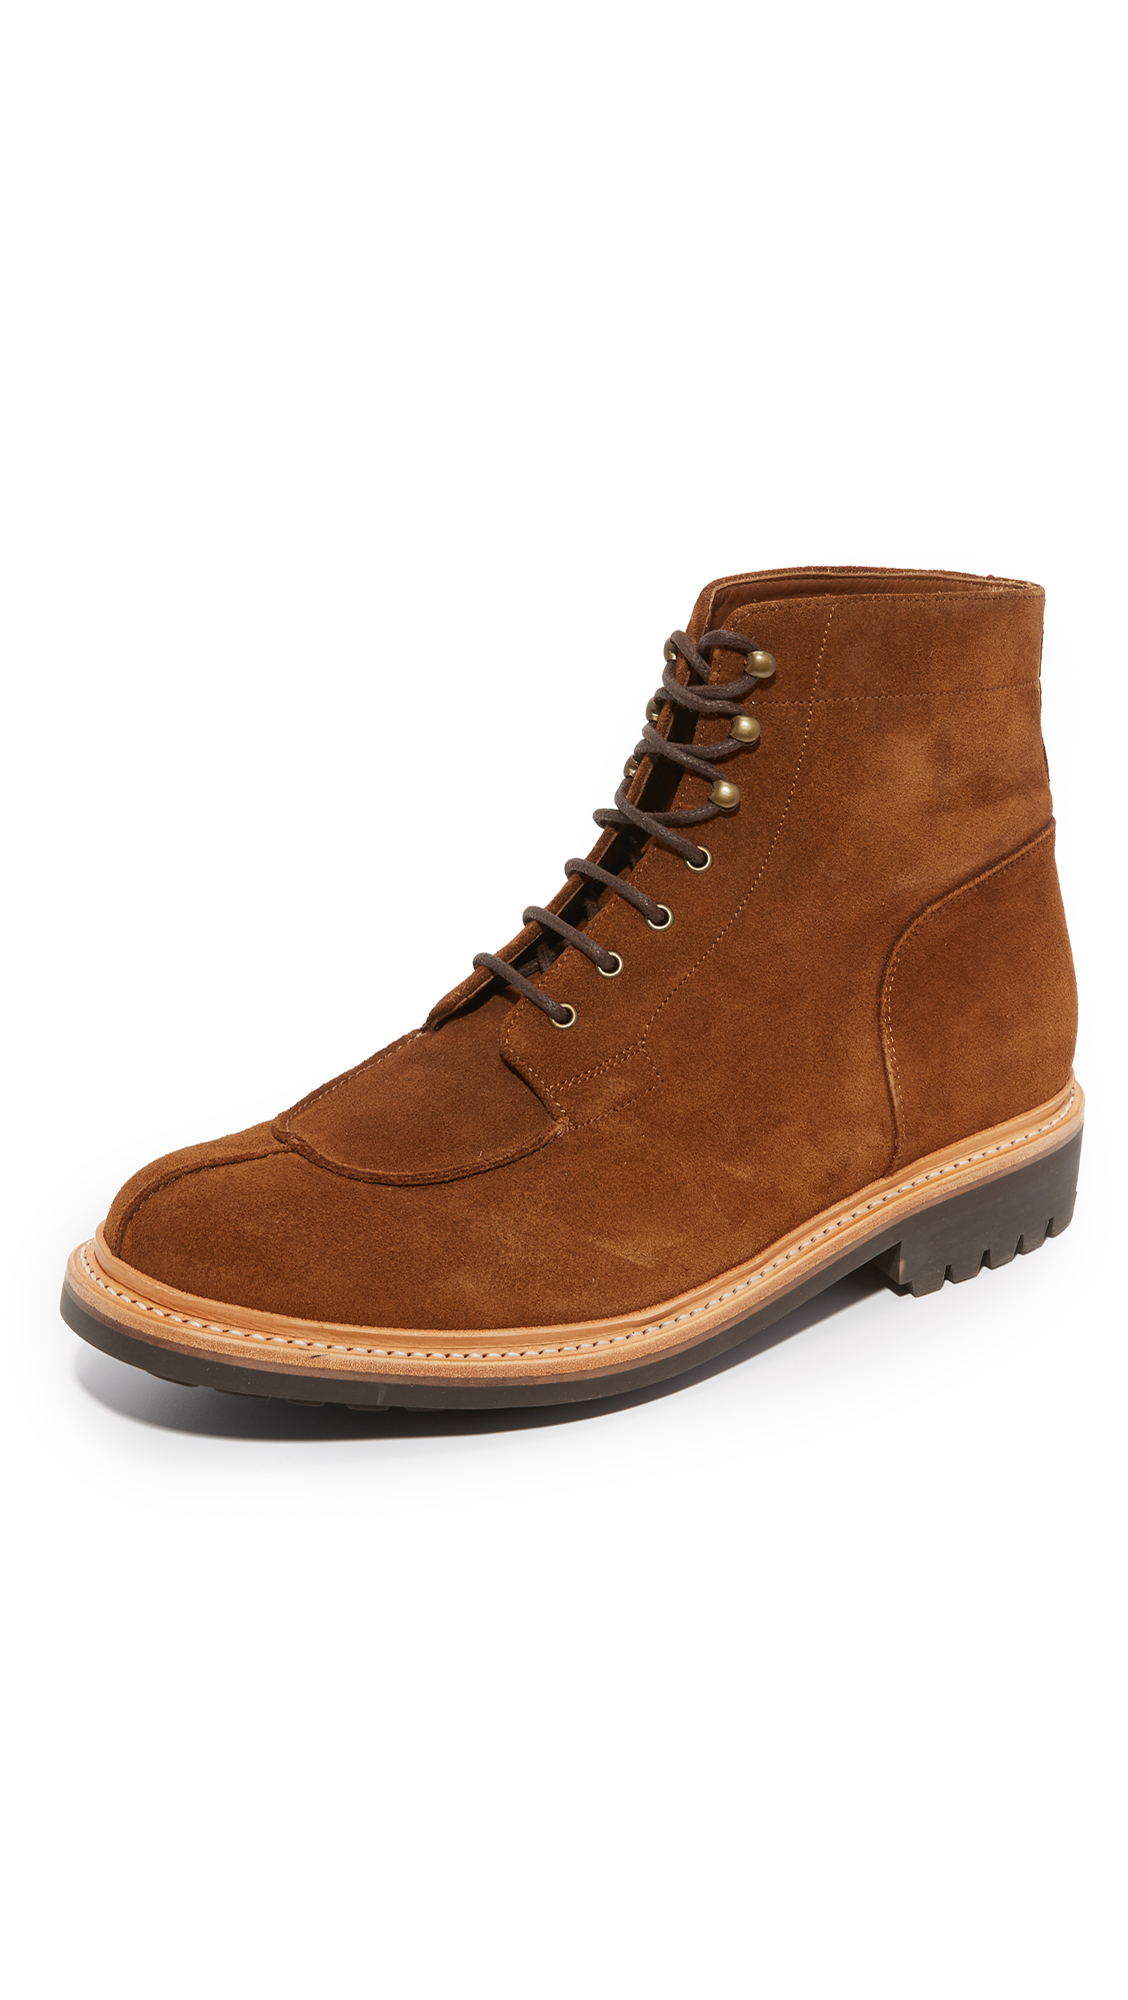 156784f41698 Lyst - Grenson Grover Suede Split Toe Boots for Men